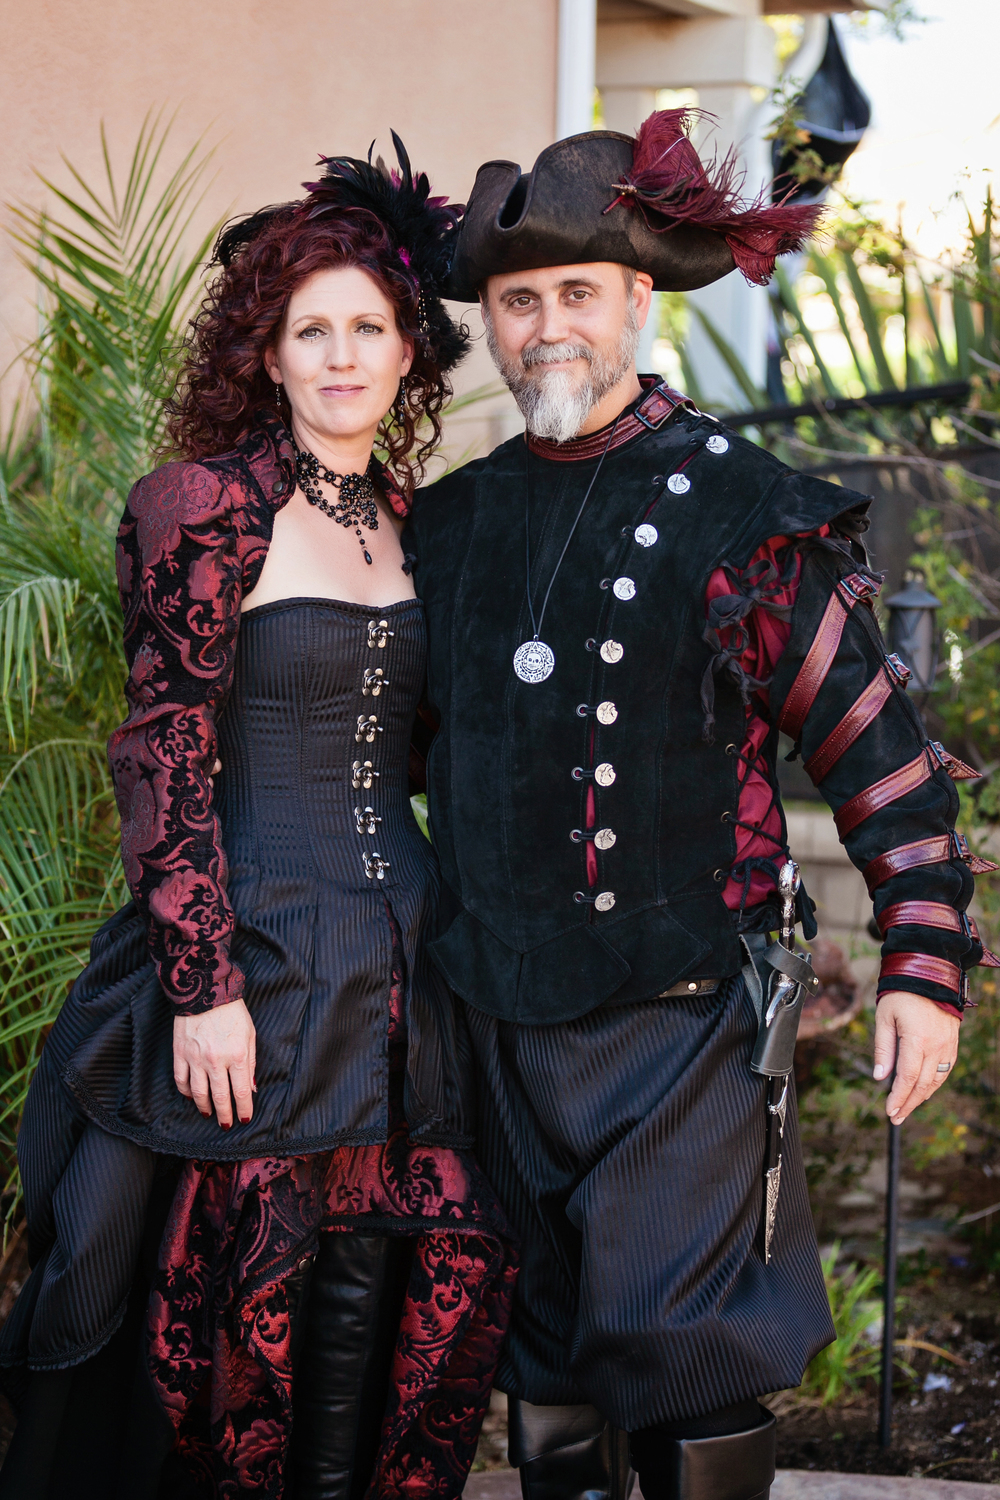 The Corset Gown Outfit and the Livingston Doublet can be found in our Steampunk Collection.